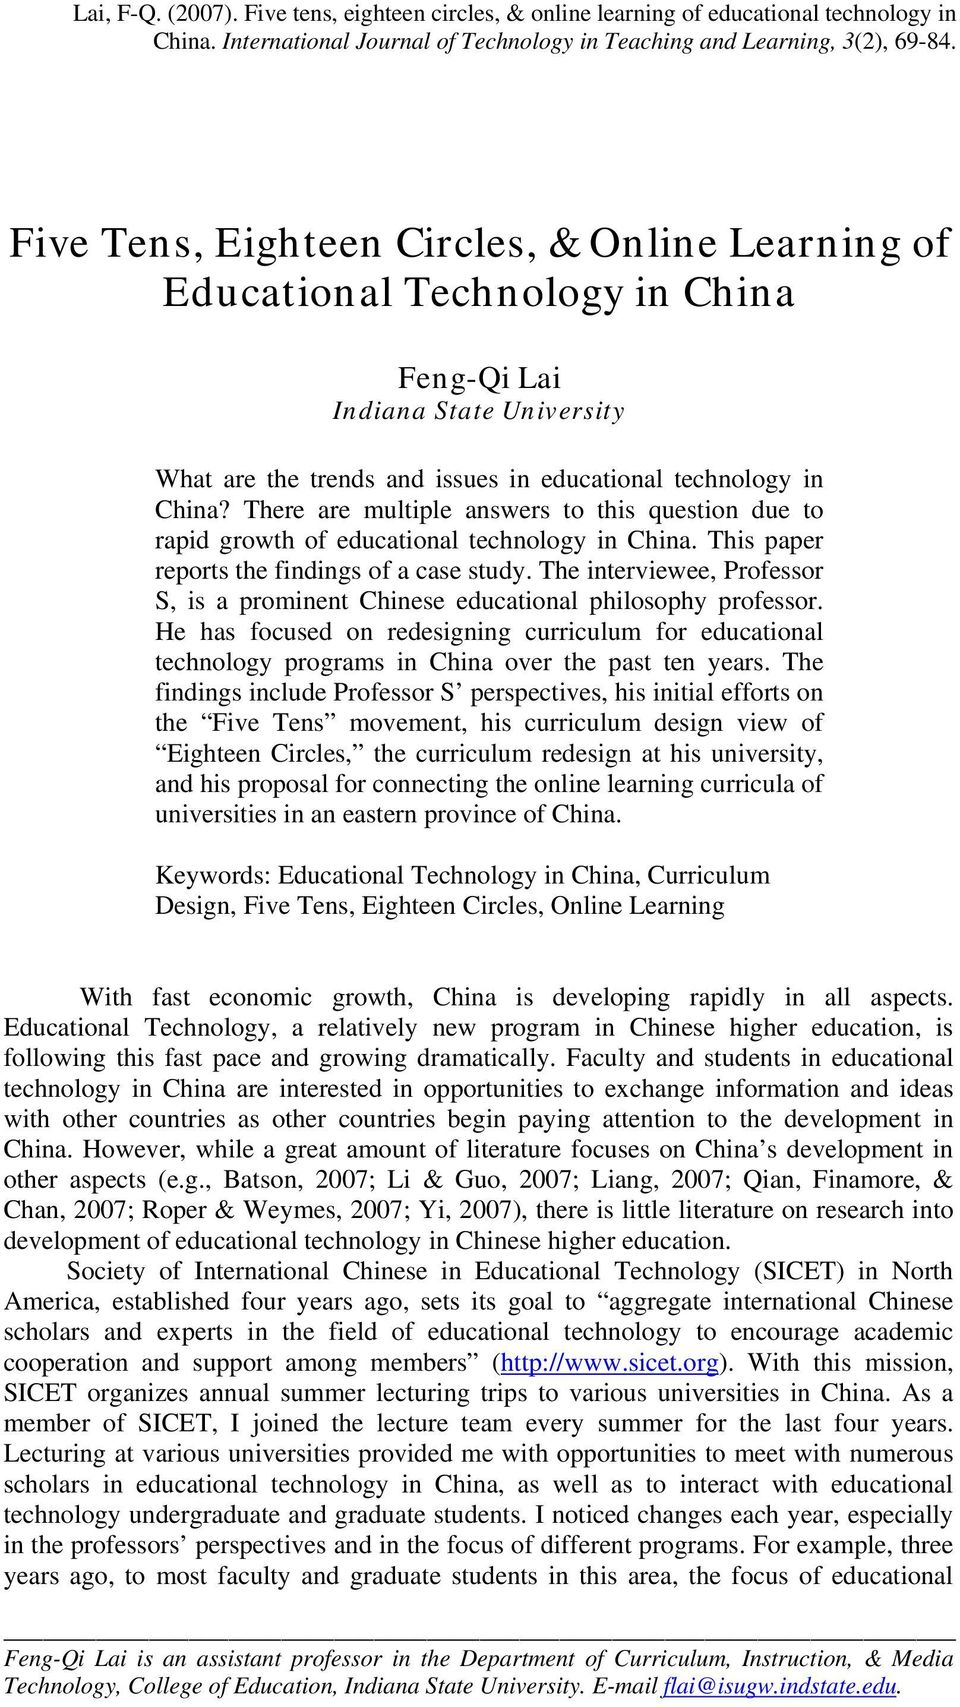 There are multiple answers to this question due to rapid growth of educational technology in China. This paper reports the findings of a case study.